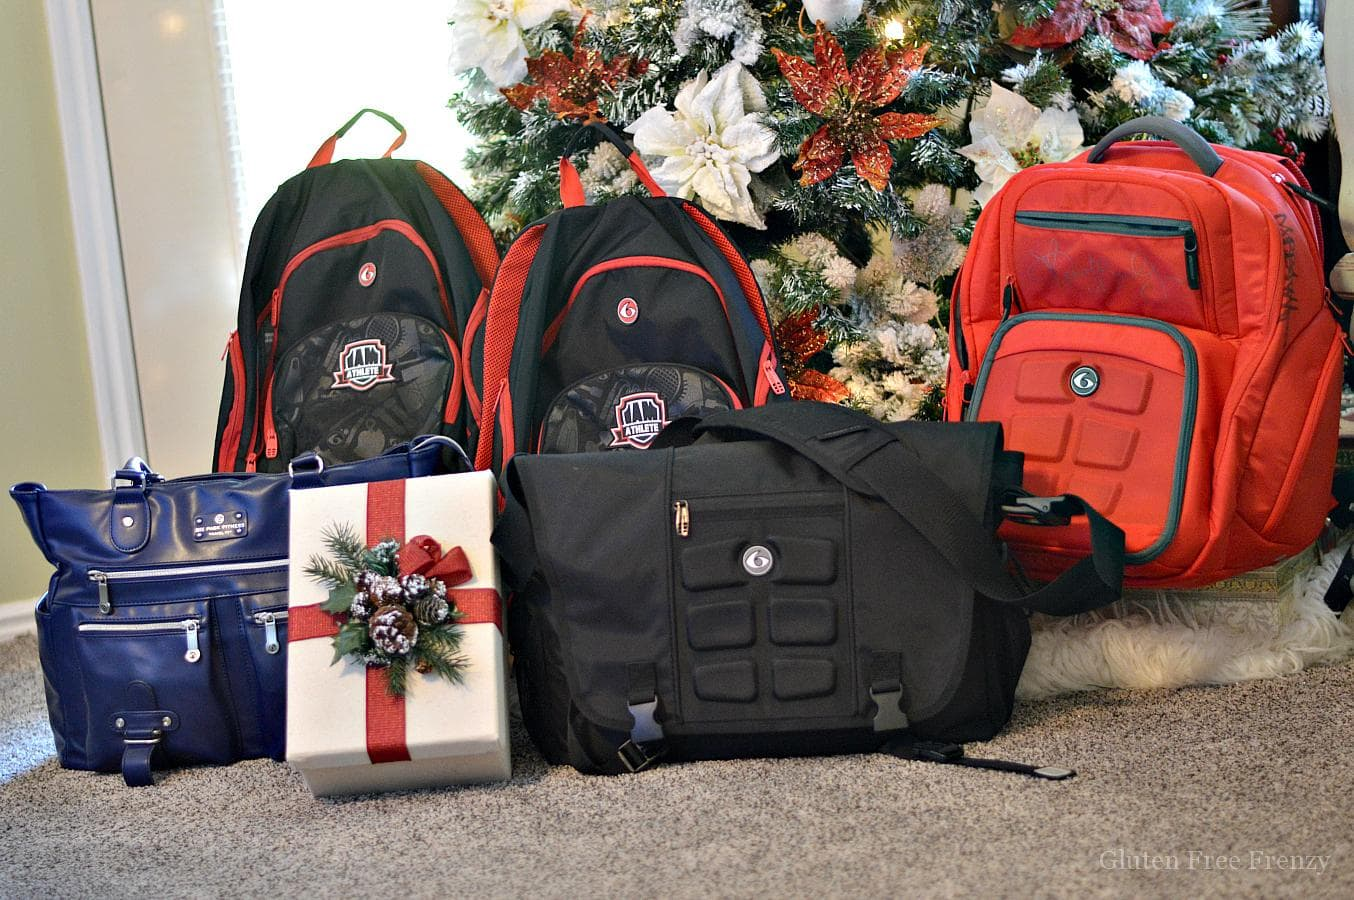 6 Pack Bags holiday gifts are great for all your fitness friends as well as those who live gluten-free. They are also great for family and friends who meal prep.